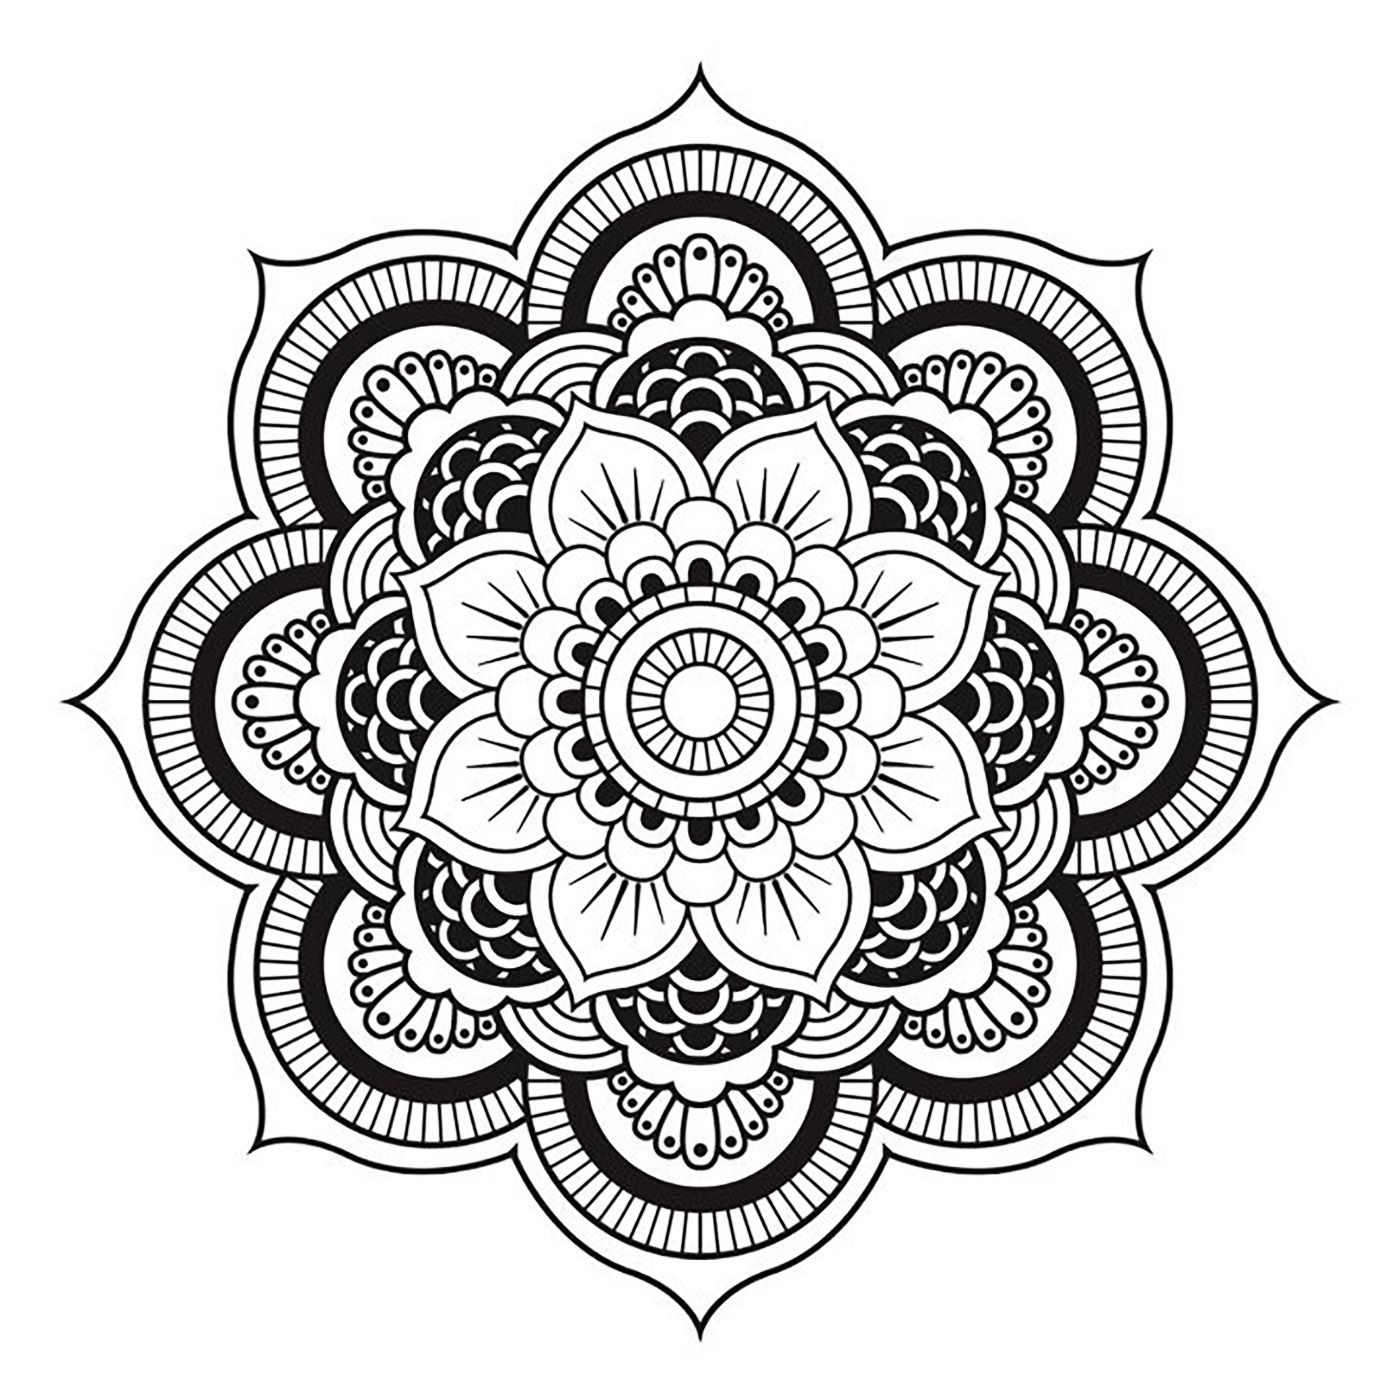 Unique mandala coloring pages - Simple Mandala Forming A Unique Flowerfrom The Gallery Mandalas